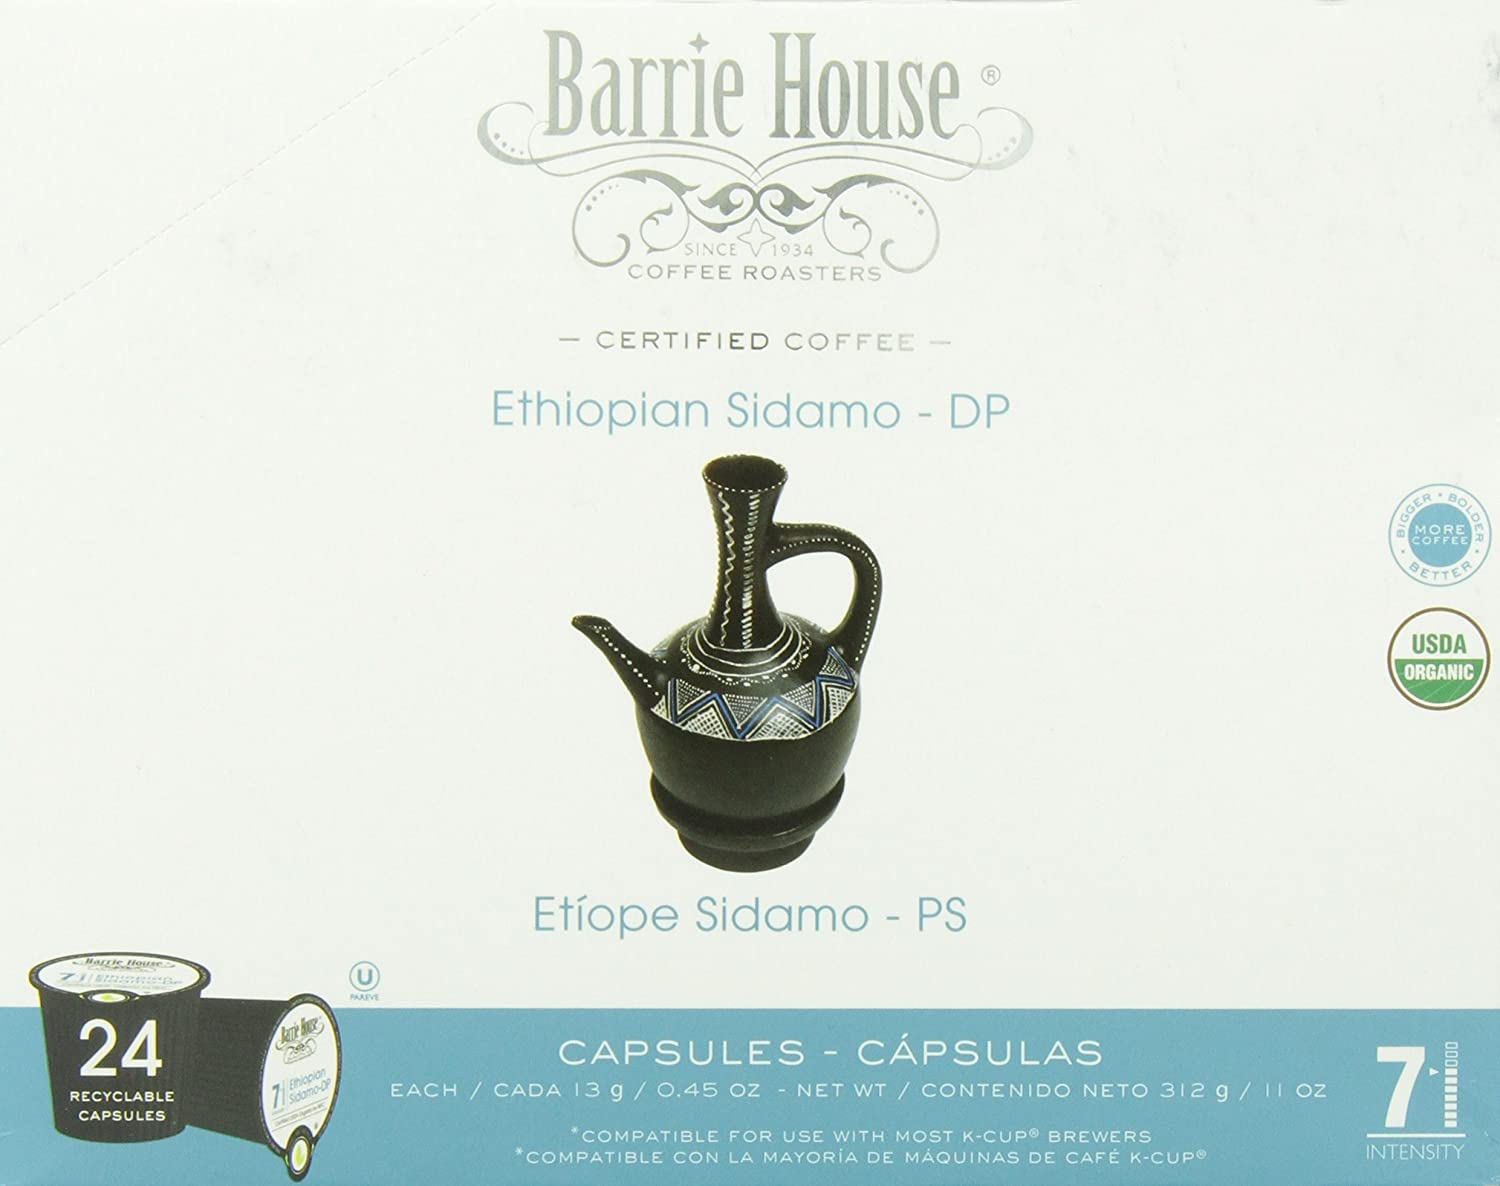 Amazon.com : Barrie House Coffee Roasters Organic Ethiopian Sidamo, Single Cup Capsules, 24 Count : Grocery & Gourmet Food